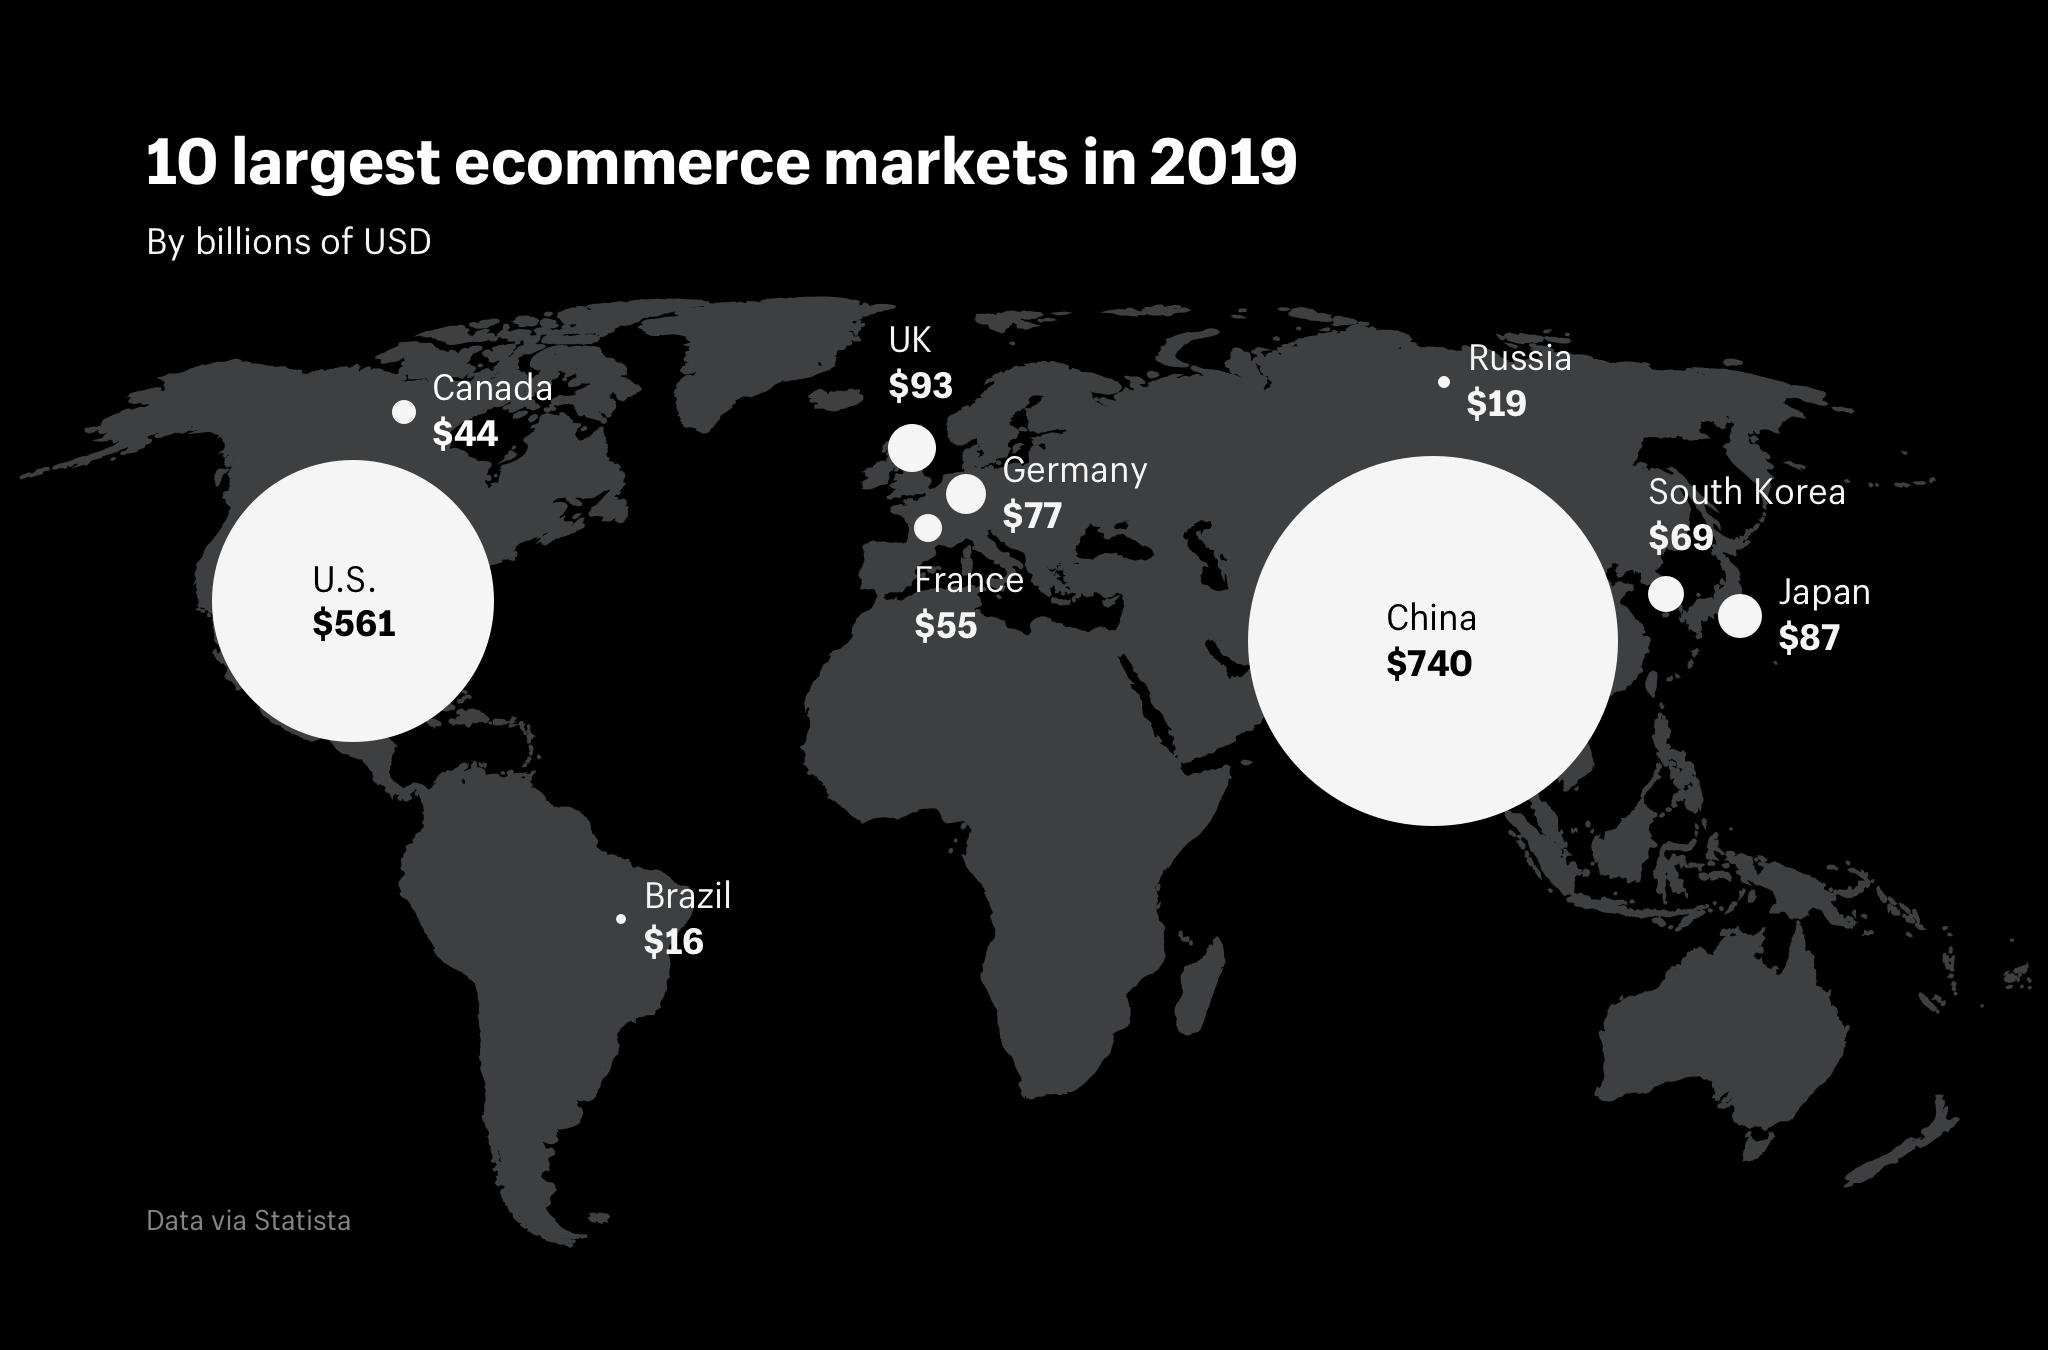 10 largest ecommerce markets in 2019